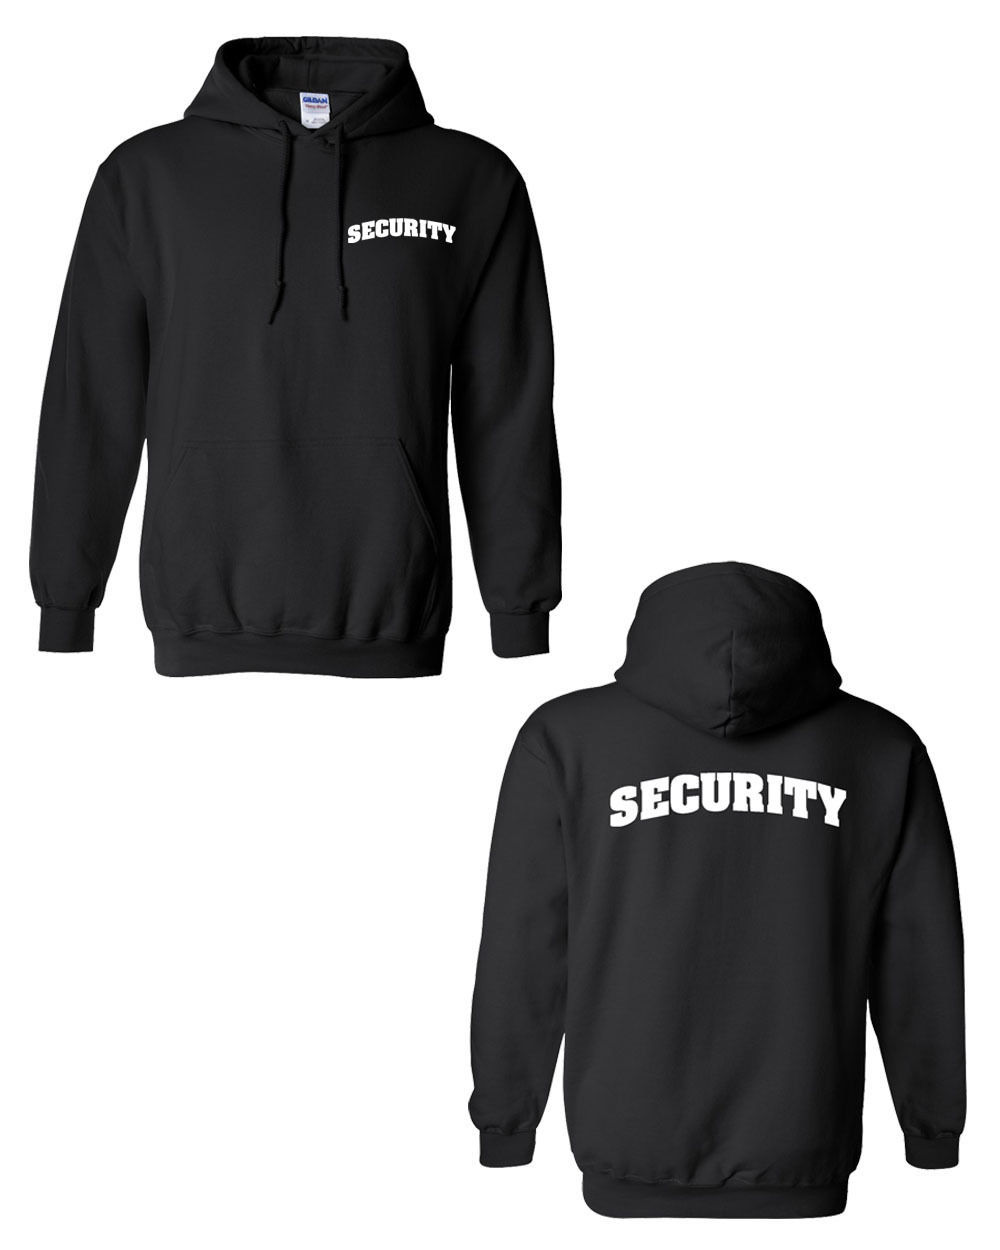 SECURITY Event  BOUNCER Bar Concert Show DOUBLE SIDED Black  Men's HOODIE for sale  USA